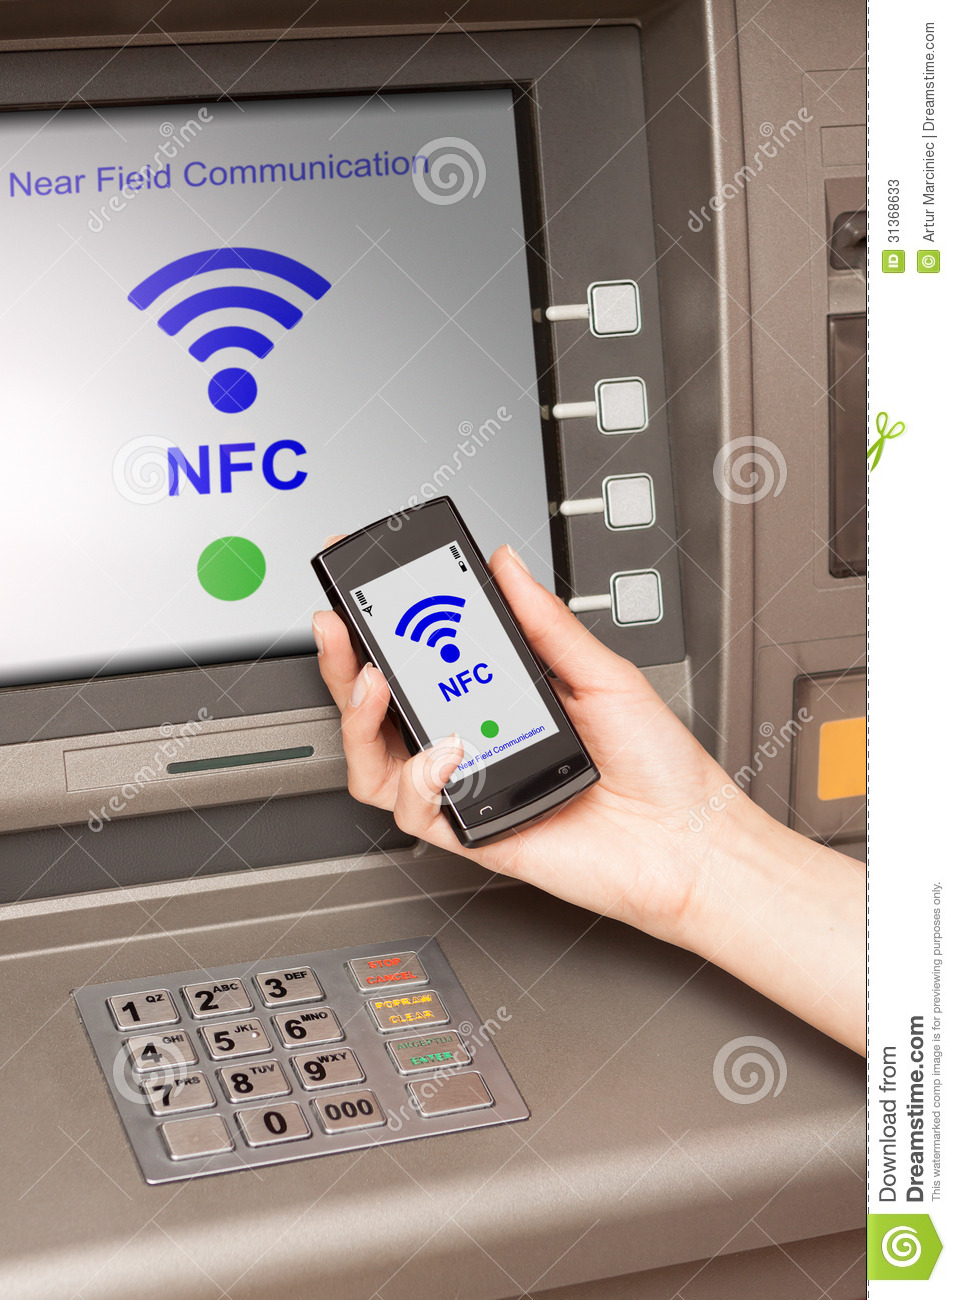 Withdrawing Money Atm With Mobile Phone A NFC Terminal ...